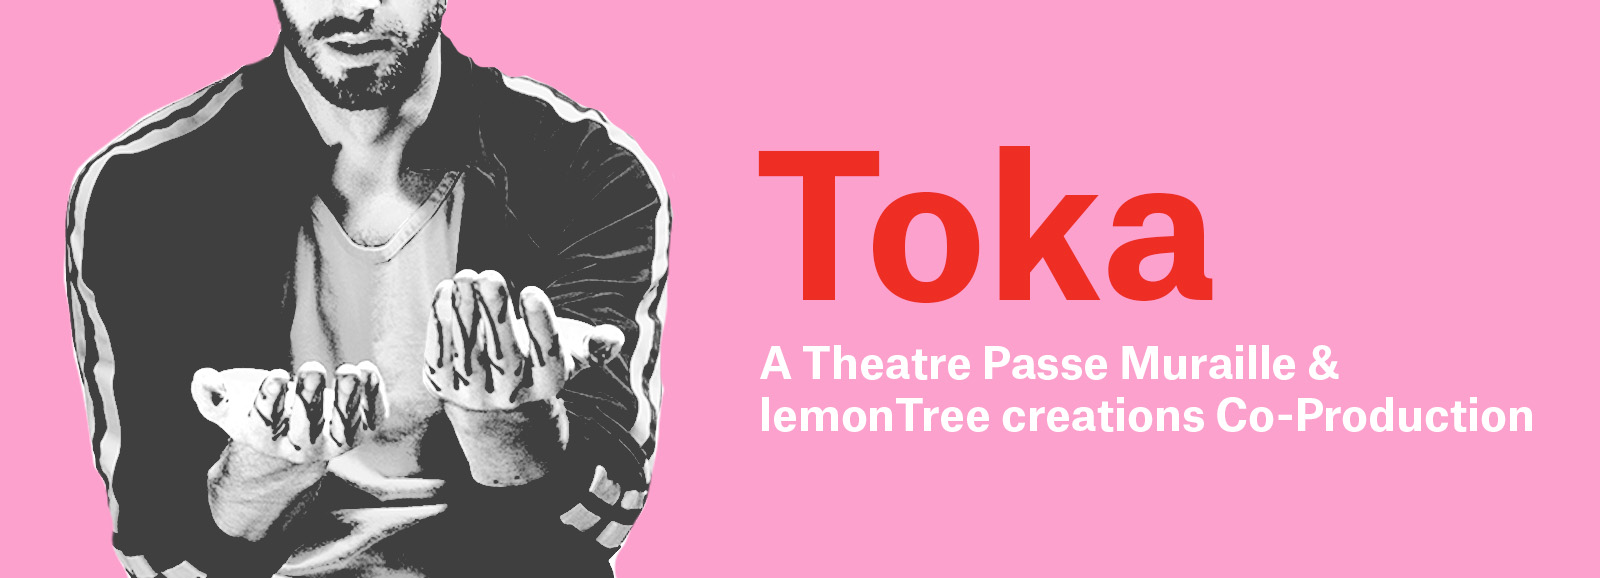 Toka - A Theatre Passe Muraille & lemonTree creations Co-Production